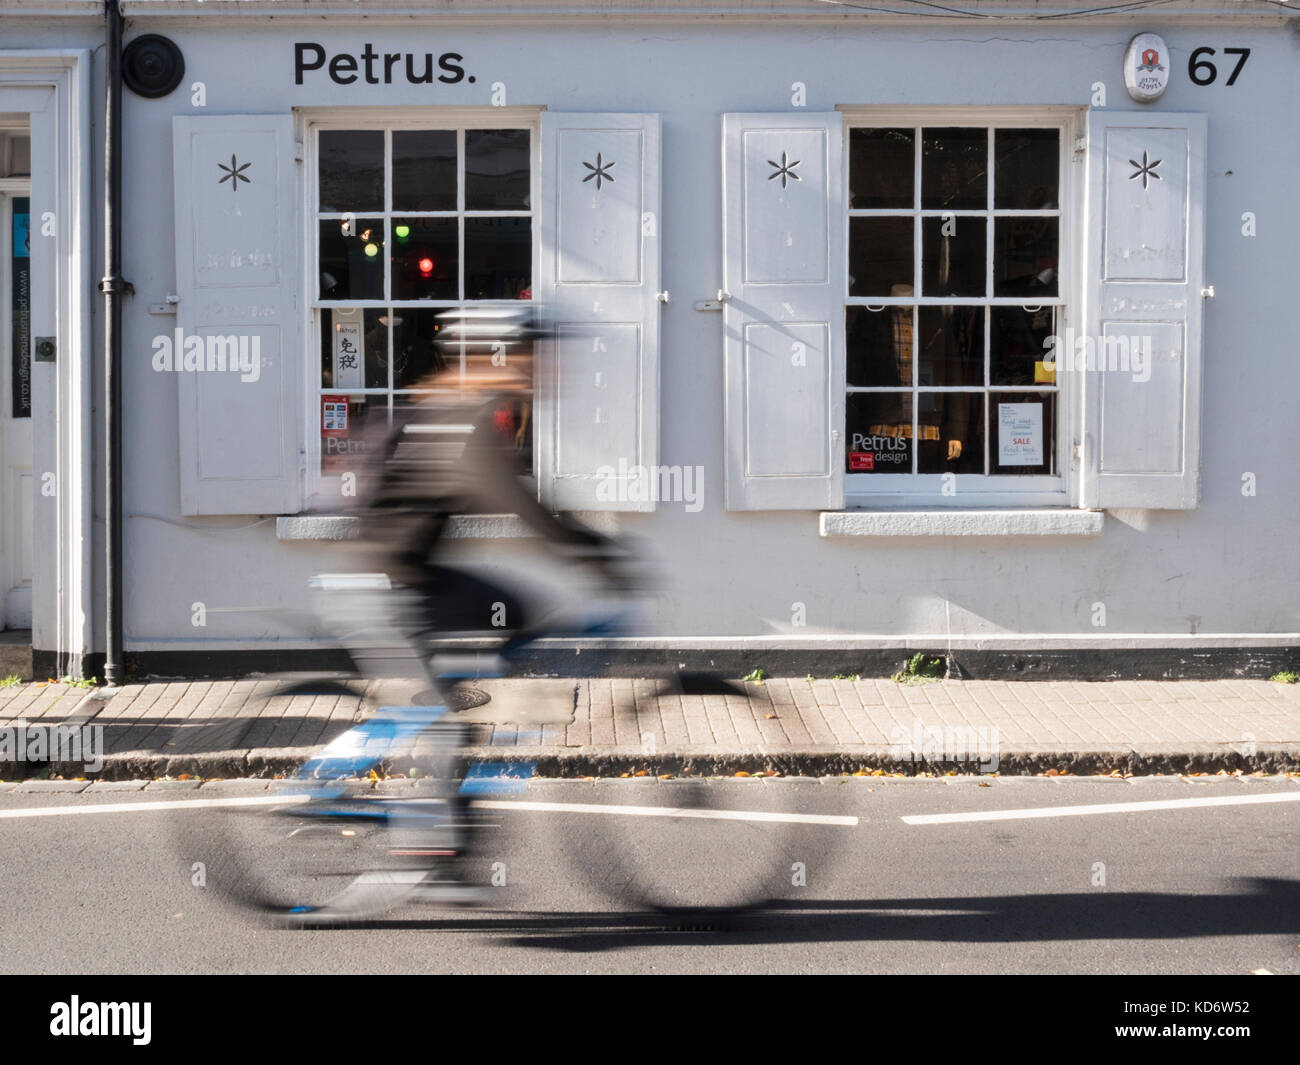 The Petrus Designer clothes shop in Cambridge uk, an independent store. With a passing cyclist with motion blur. - Stock Image